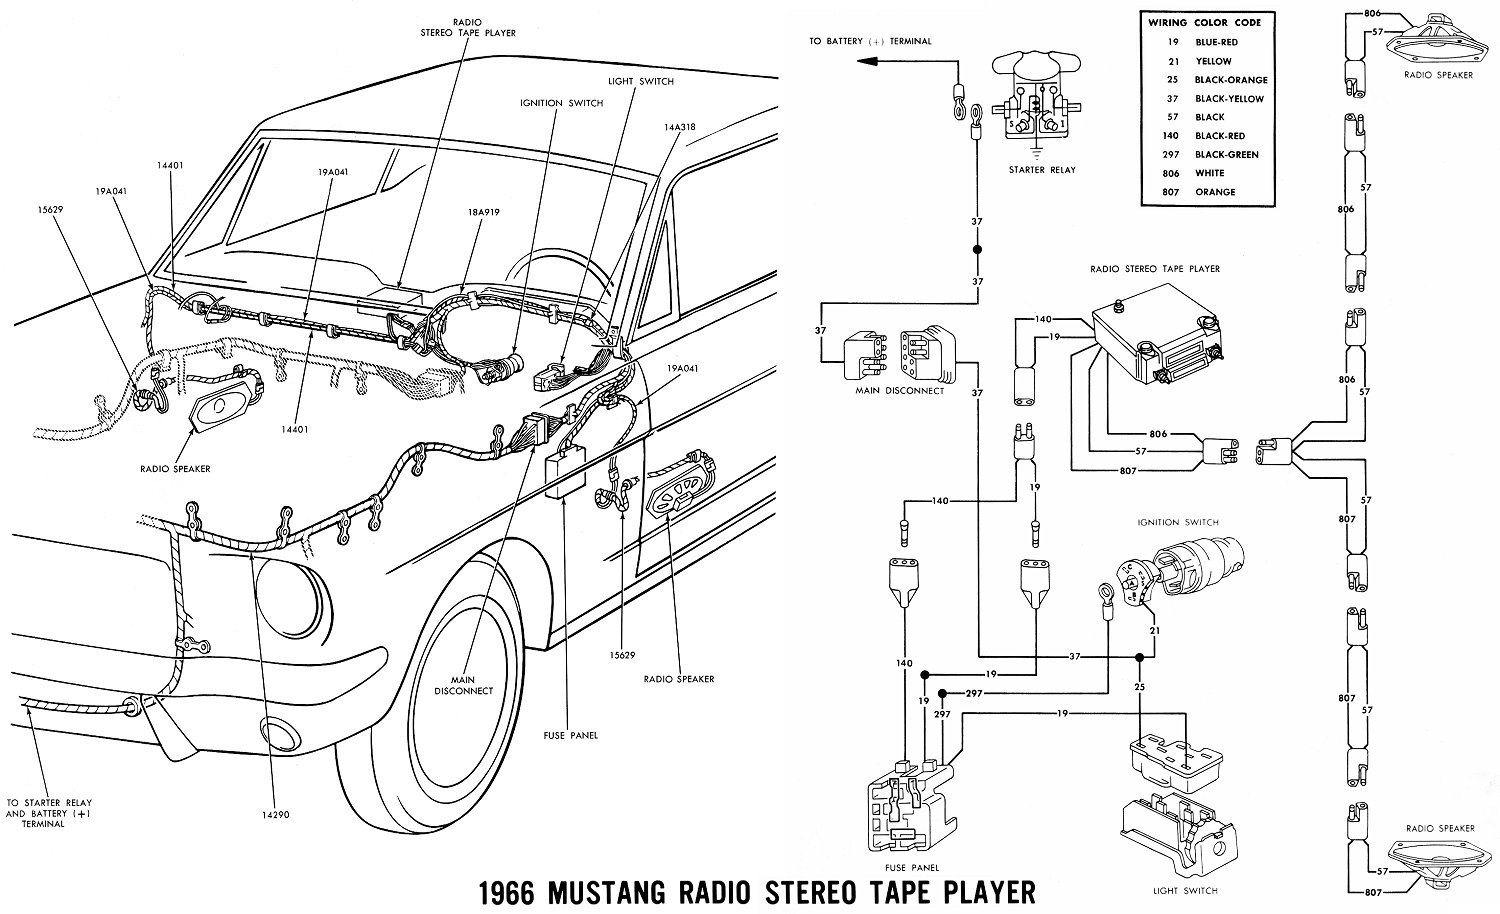 66stereo 66 mustang wiring diagram radio tape 66 mustang turn signal wiring engine wiring diagram 1967 mustang v8 at mifinder.co